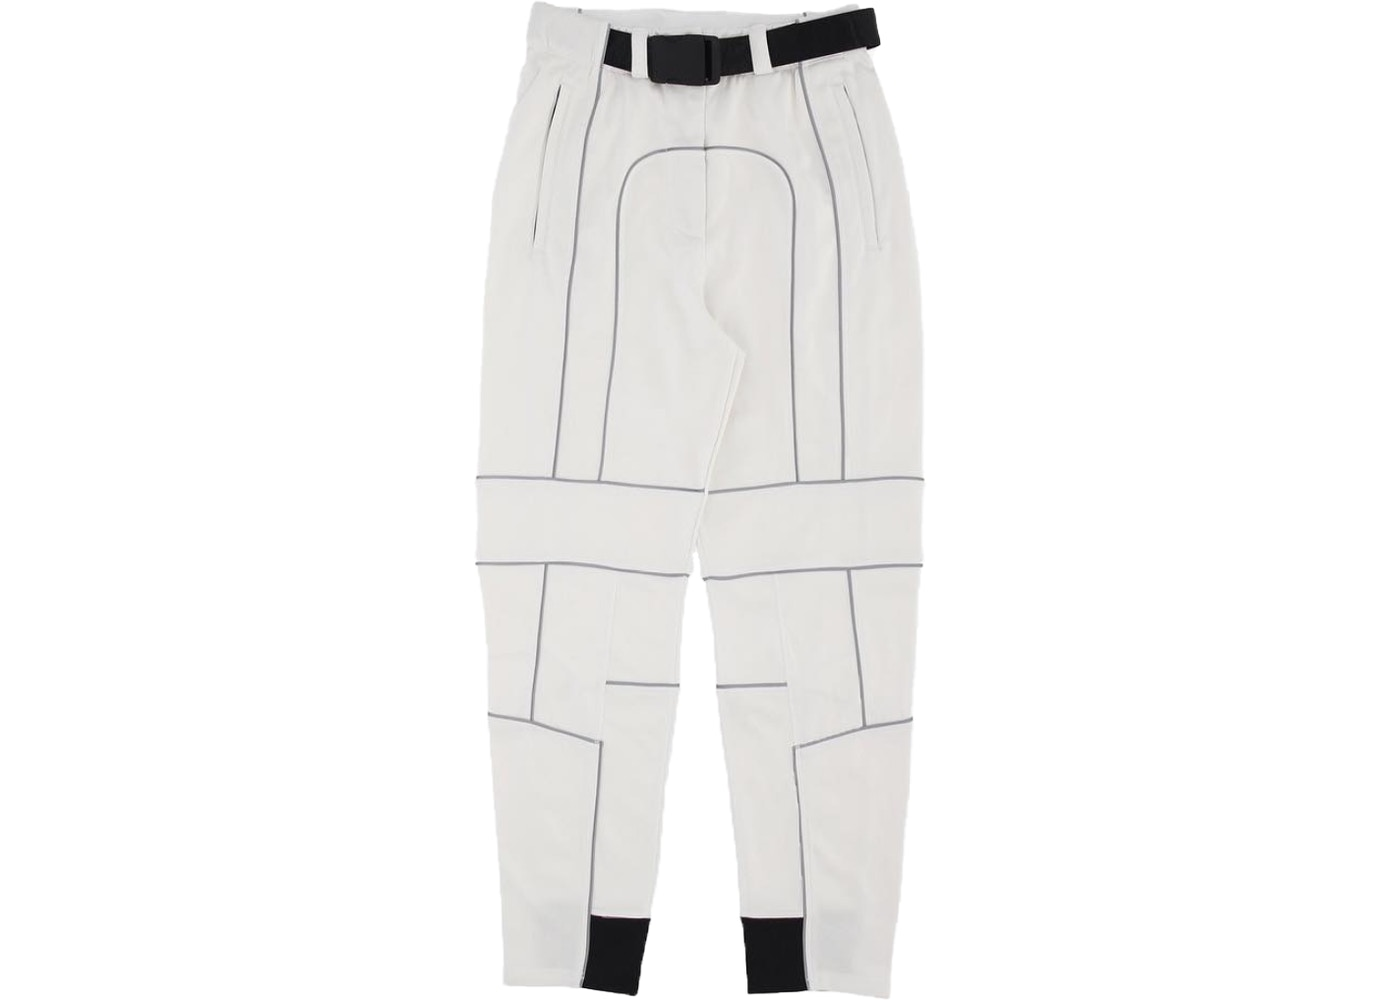 Nike x Ambush Women's Pants Phantom